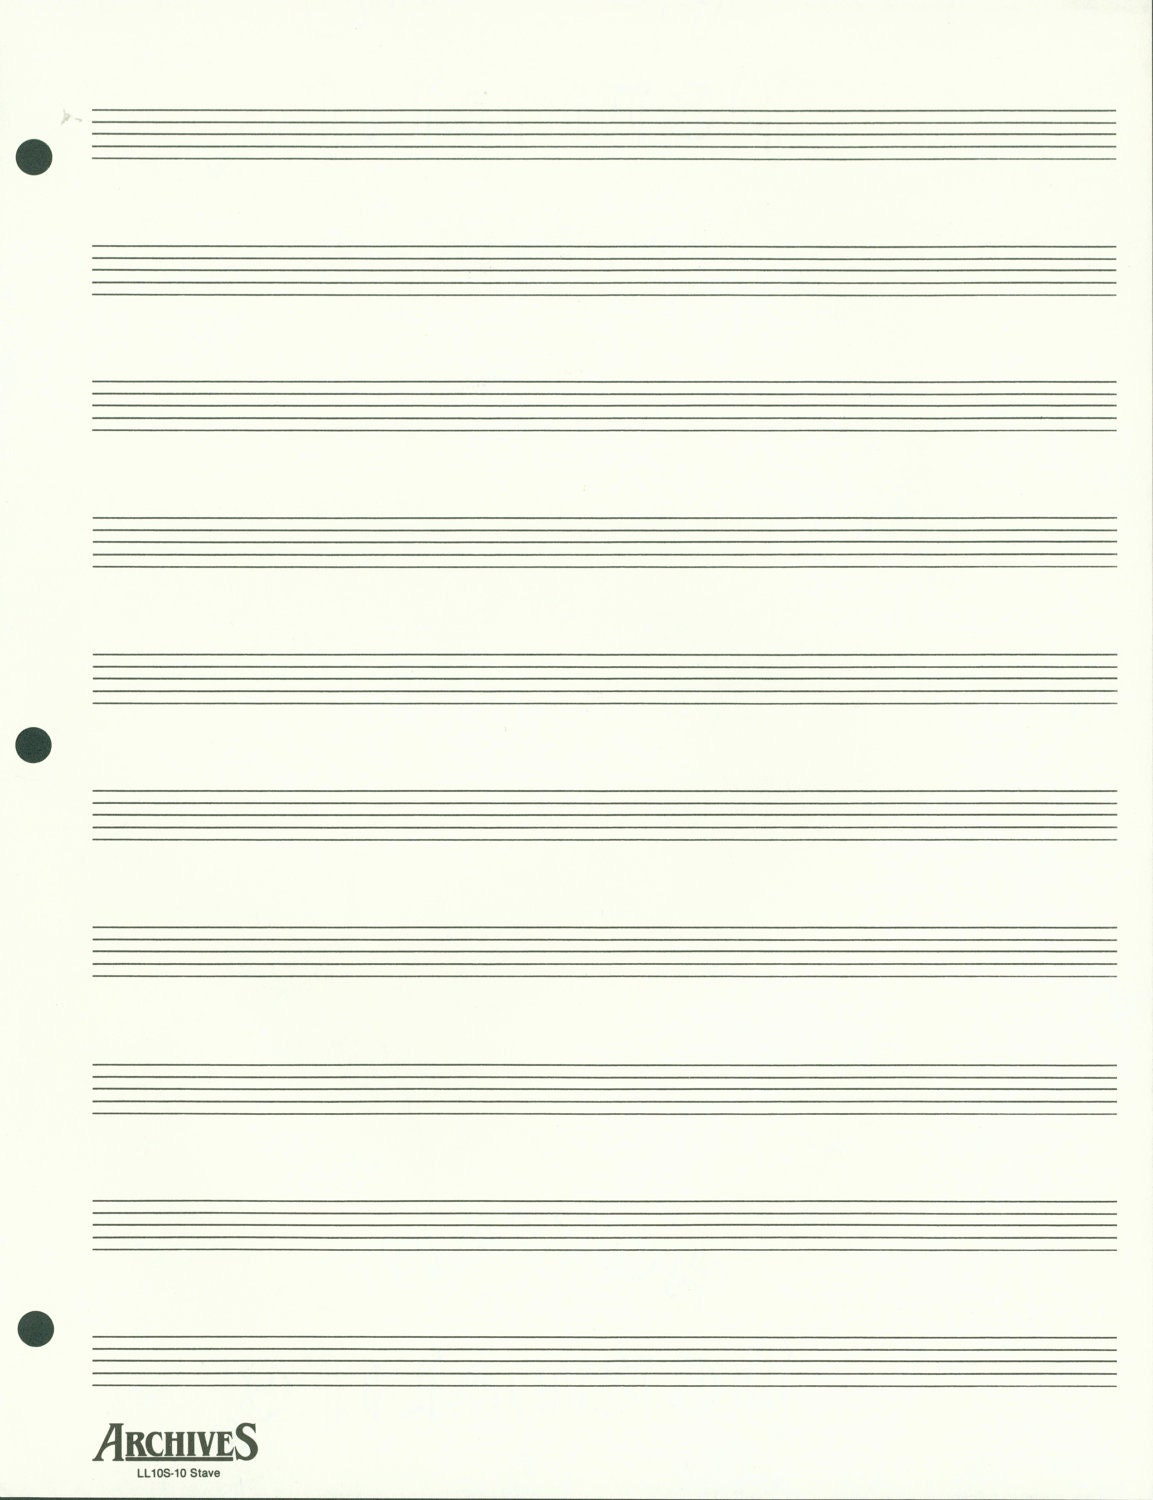 music staff paper 12 per page office templates